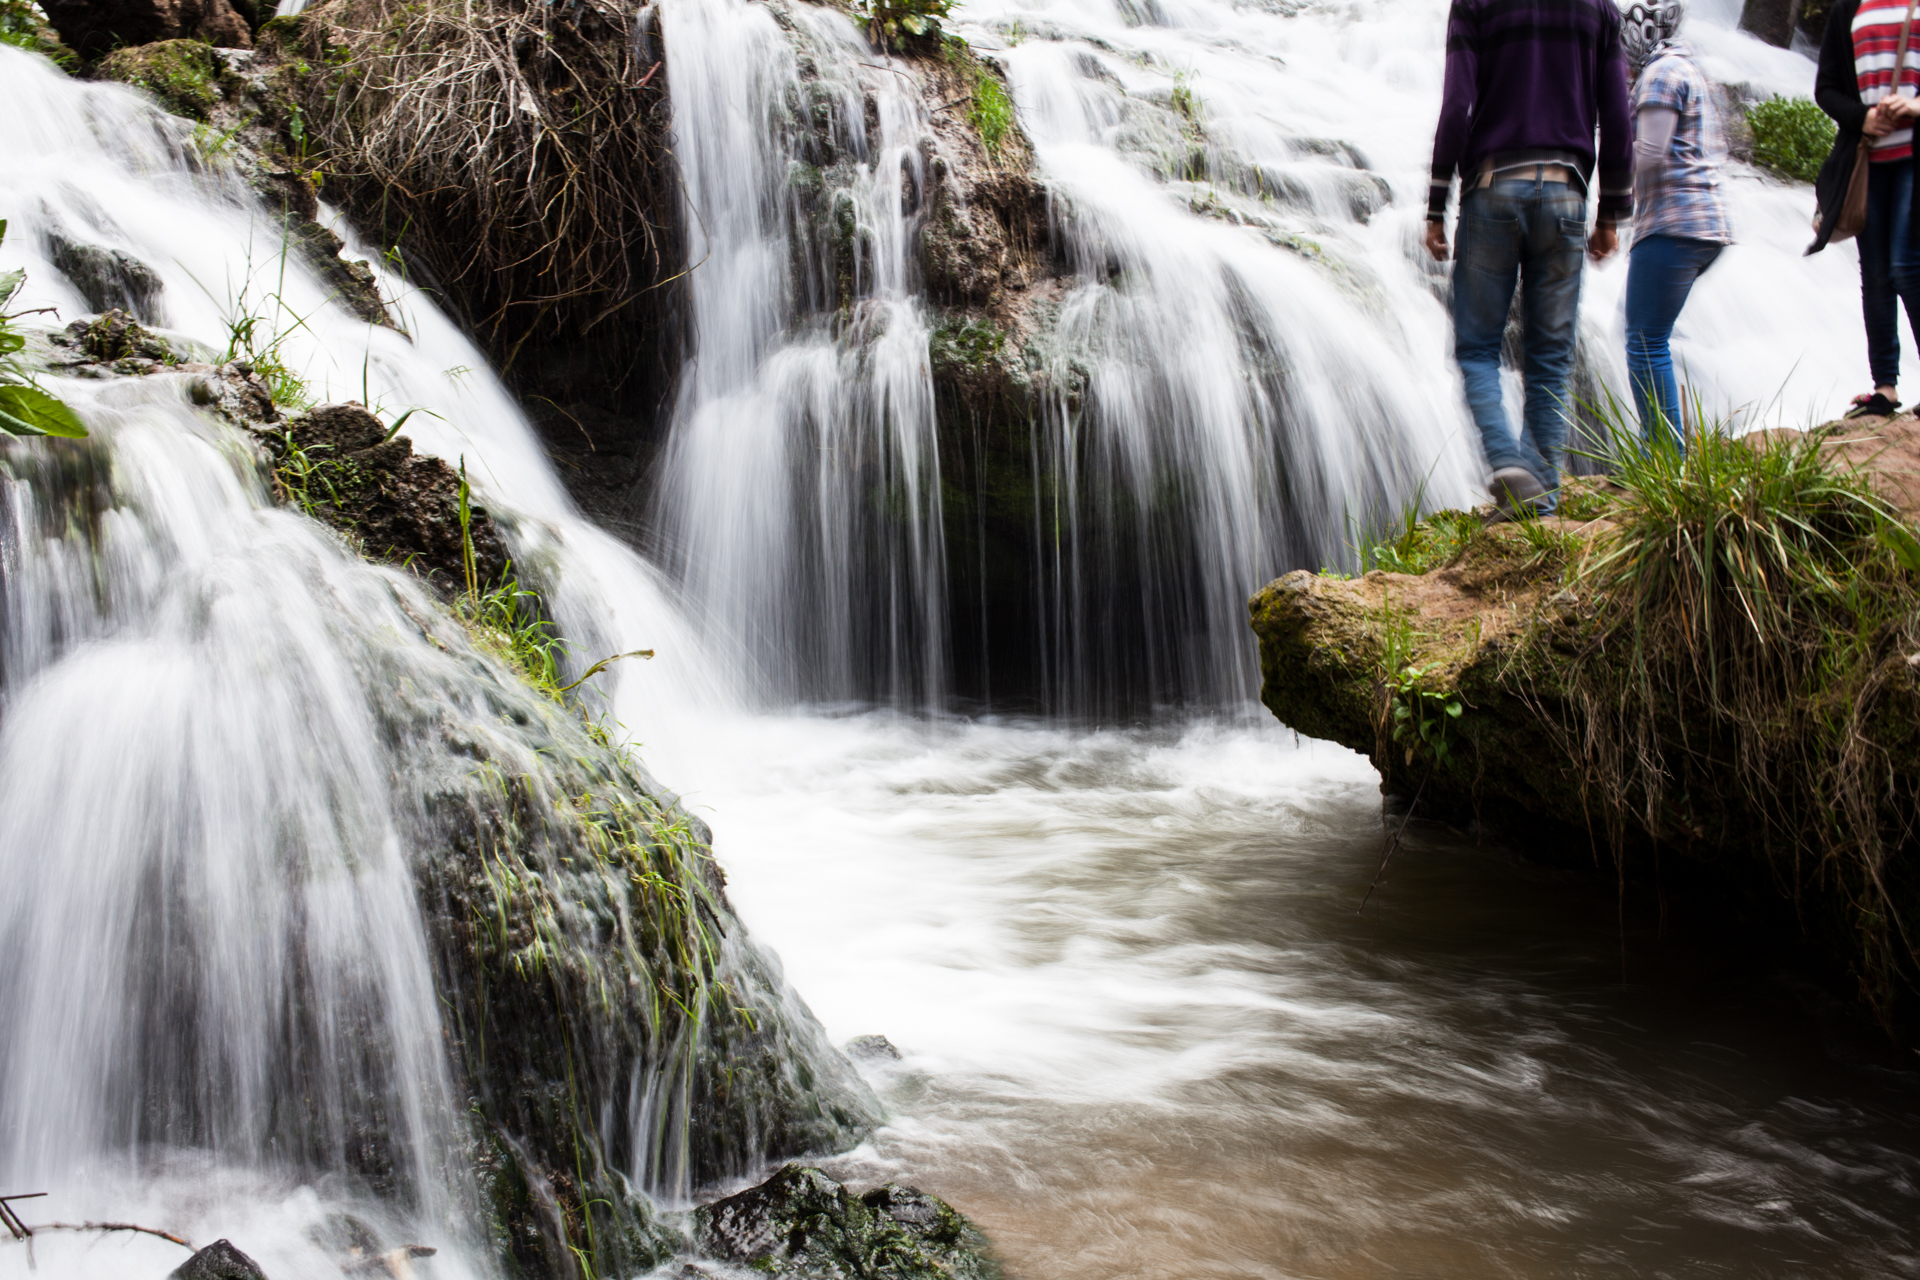 The waterfalls of Aïn Vidane (may I have not written it correctly....)